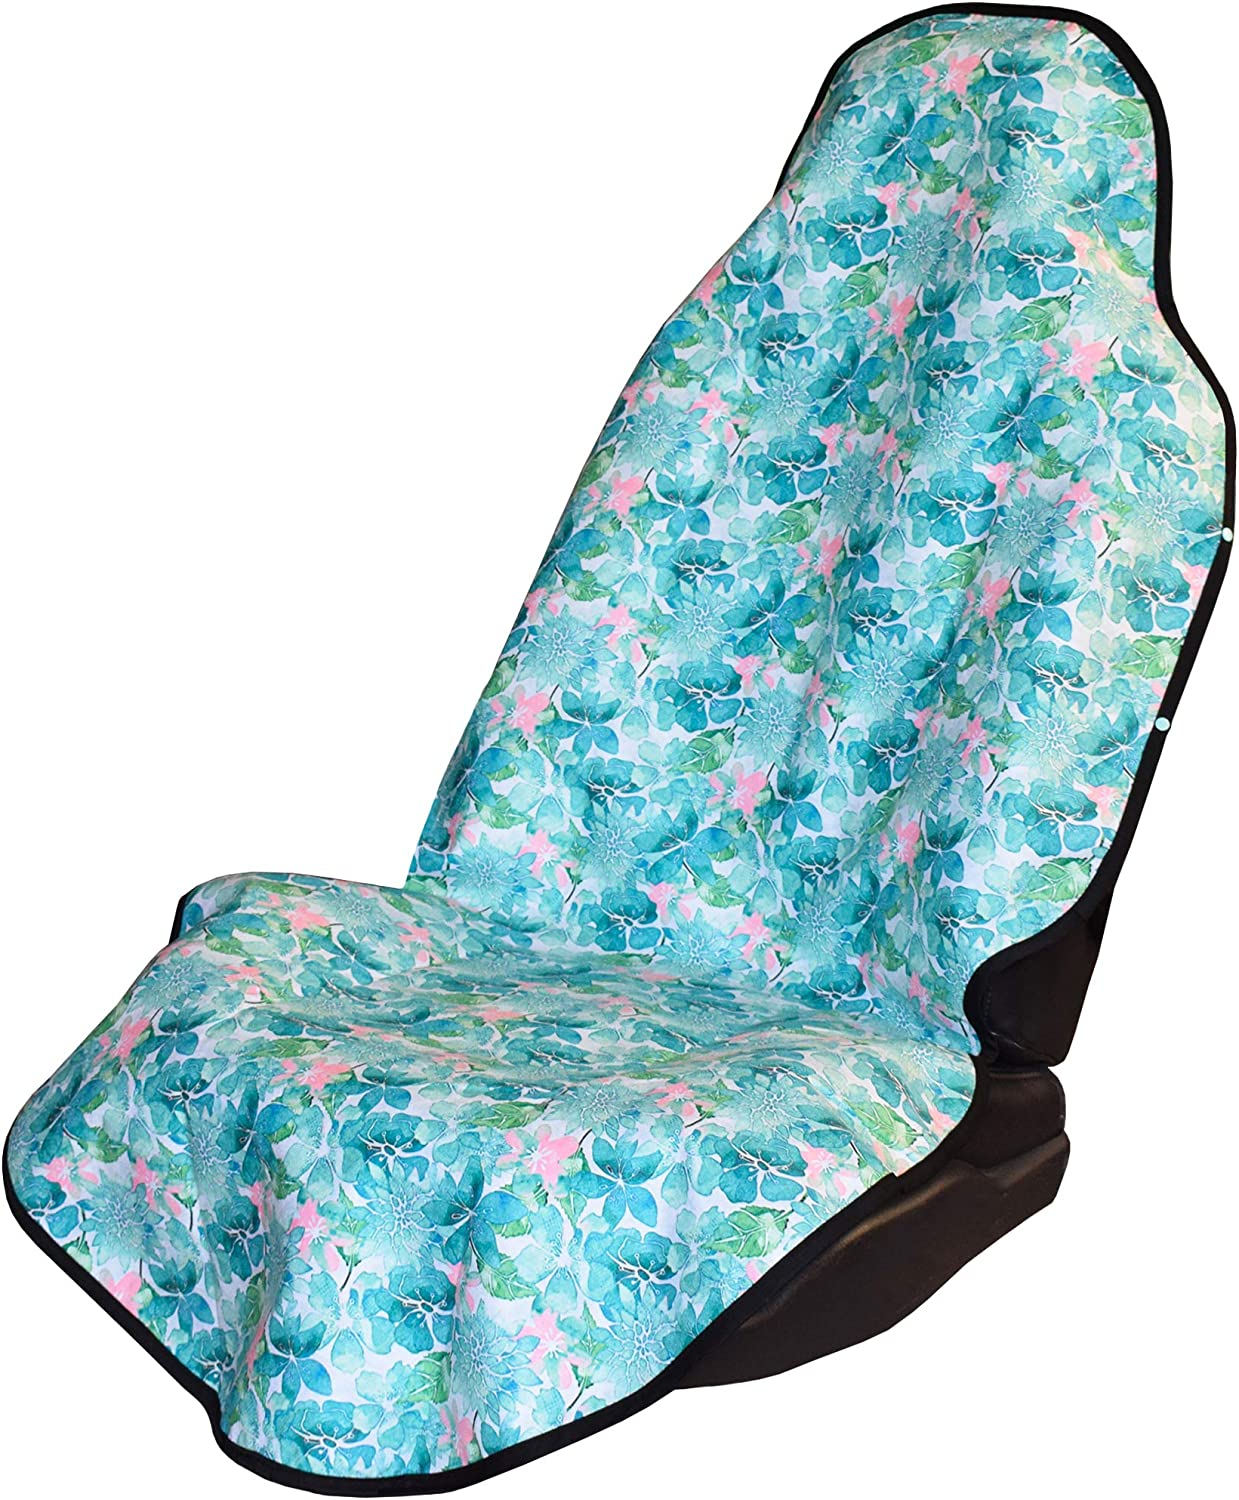 the beach perfect after swimming dogs-Pacific Floral Universal Fit Grippy Backing Machine Washable working out Seat Hoody surfing 100/% Waterproof Sweat Proof Car /& Truck Seat Cover Protector